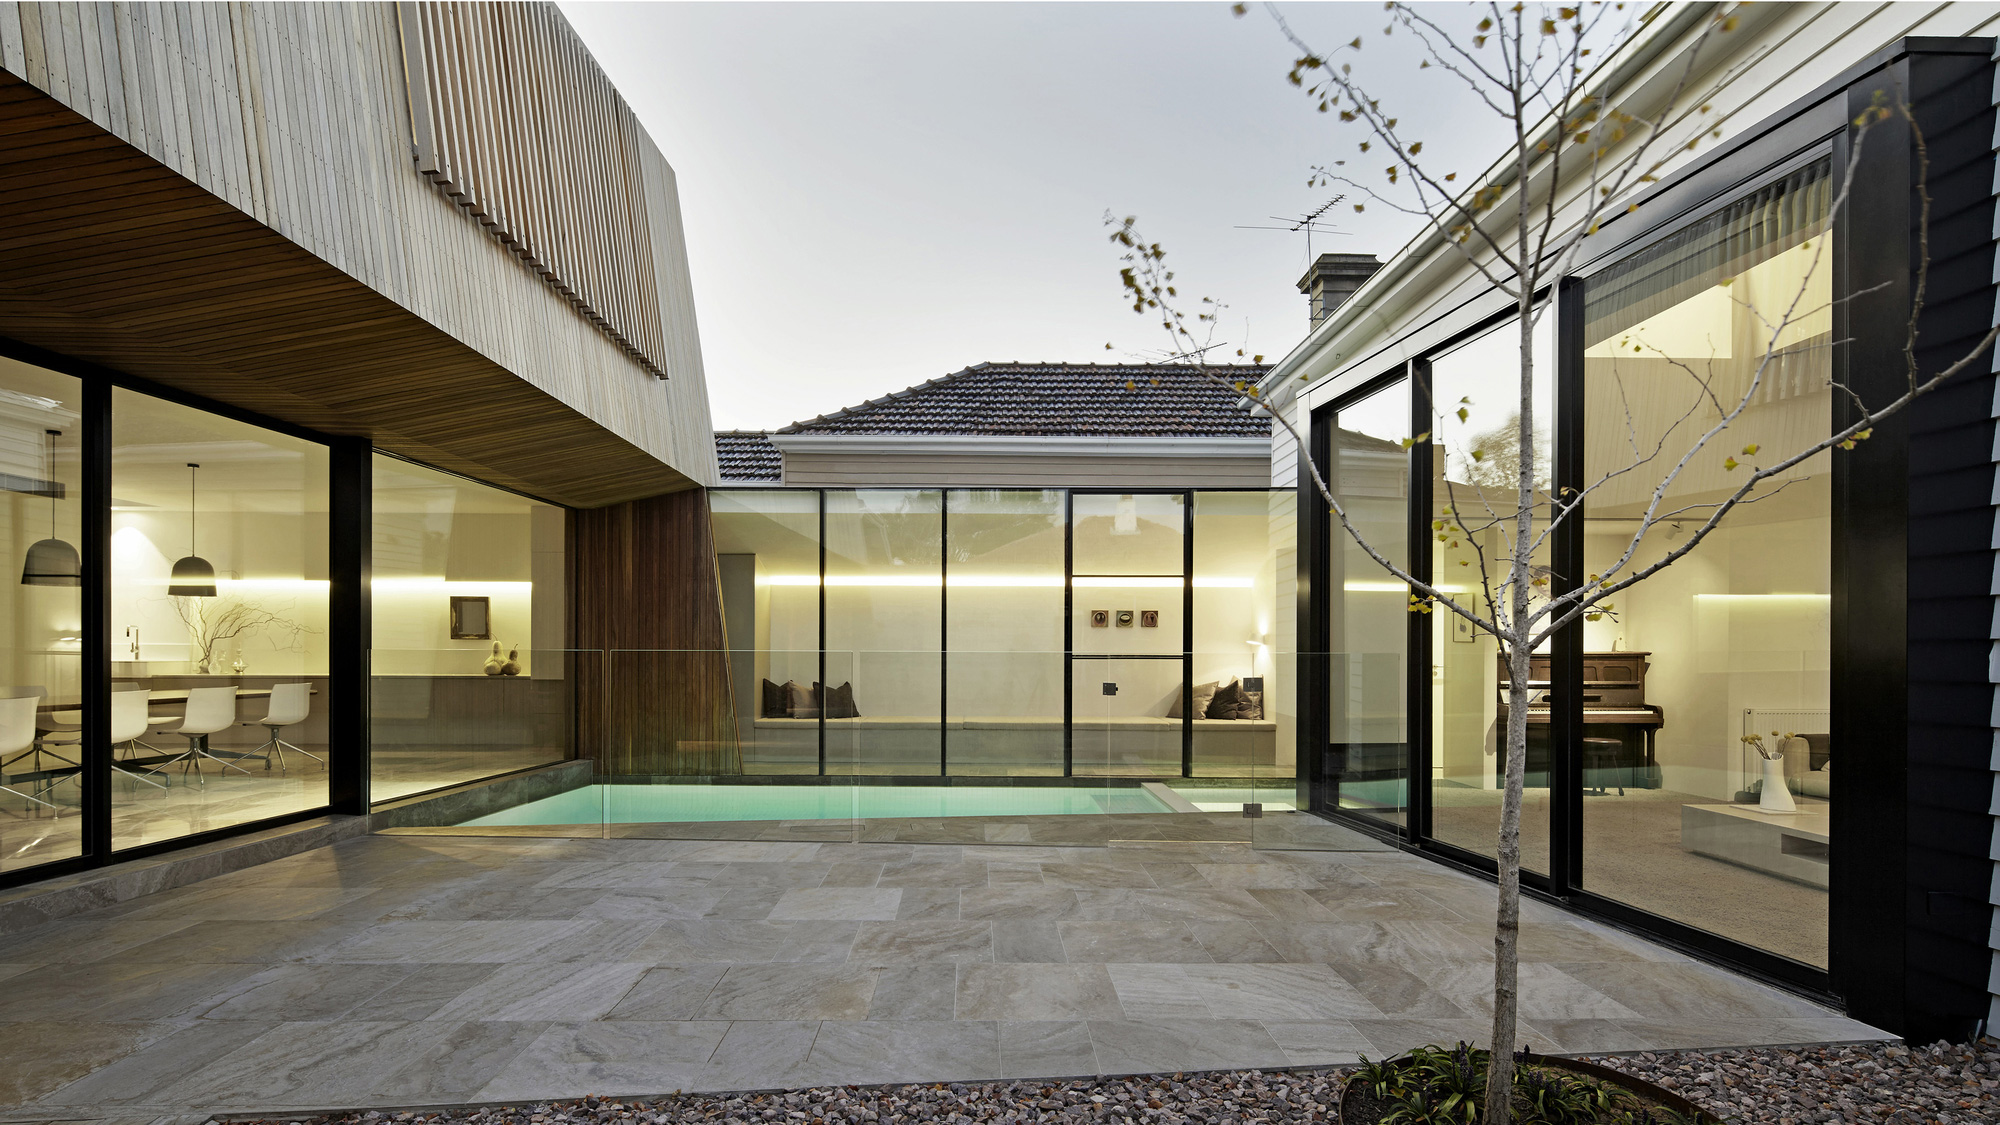 House 3 / Coy Yiontis Architects (19)